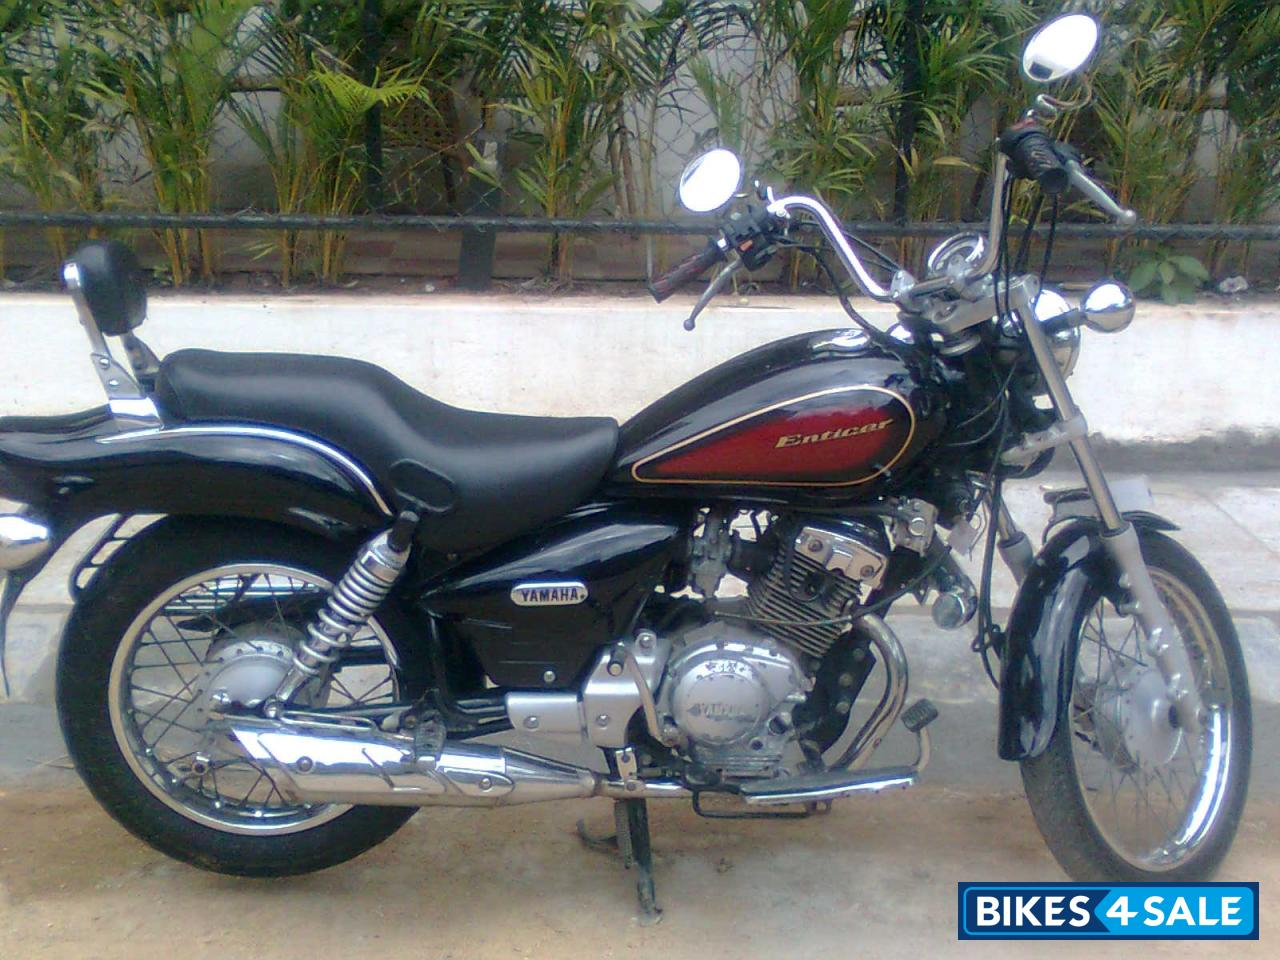 Black Yamaha Enticer Picture 1 Bike ID 57960 Located In